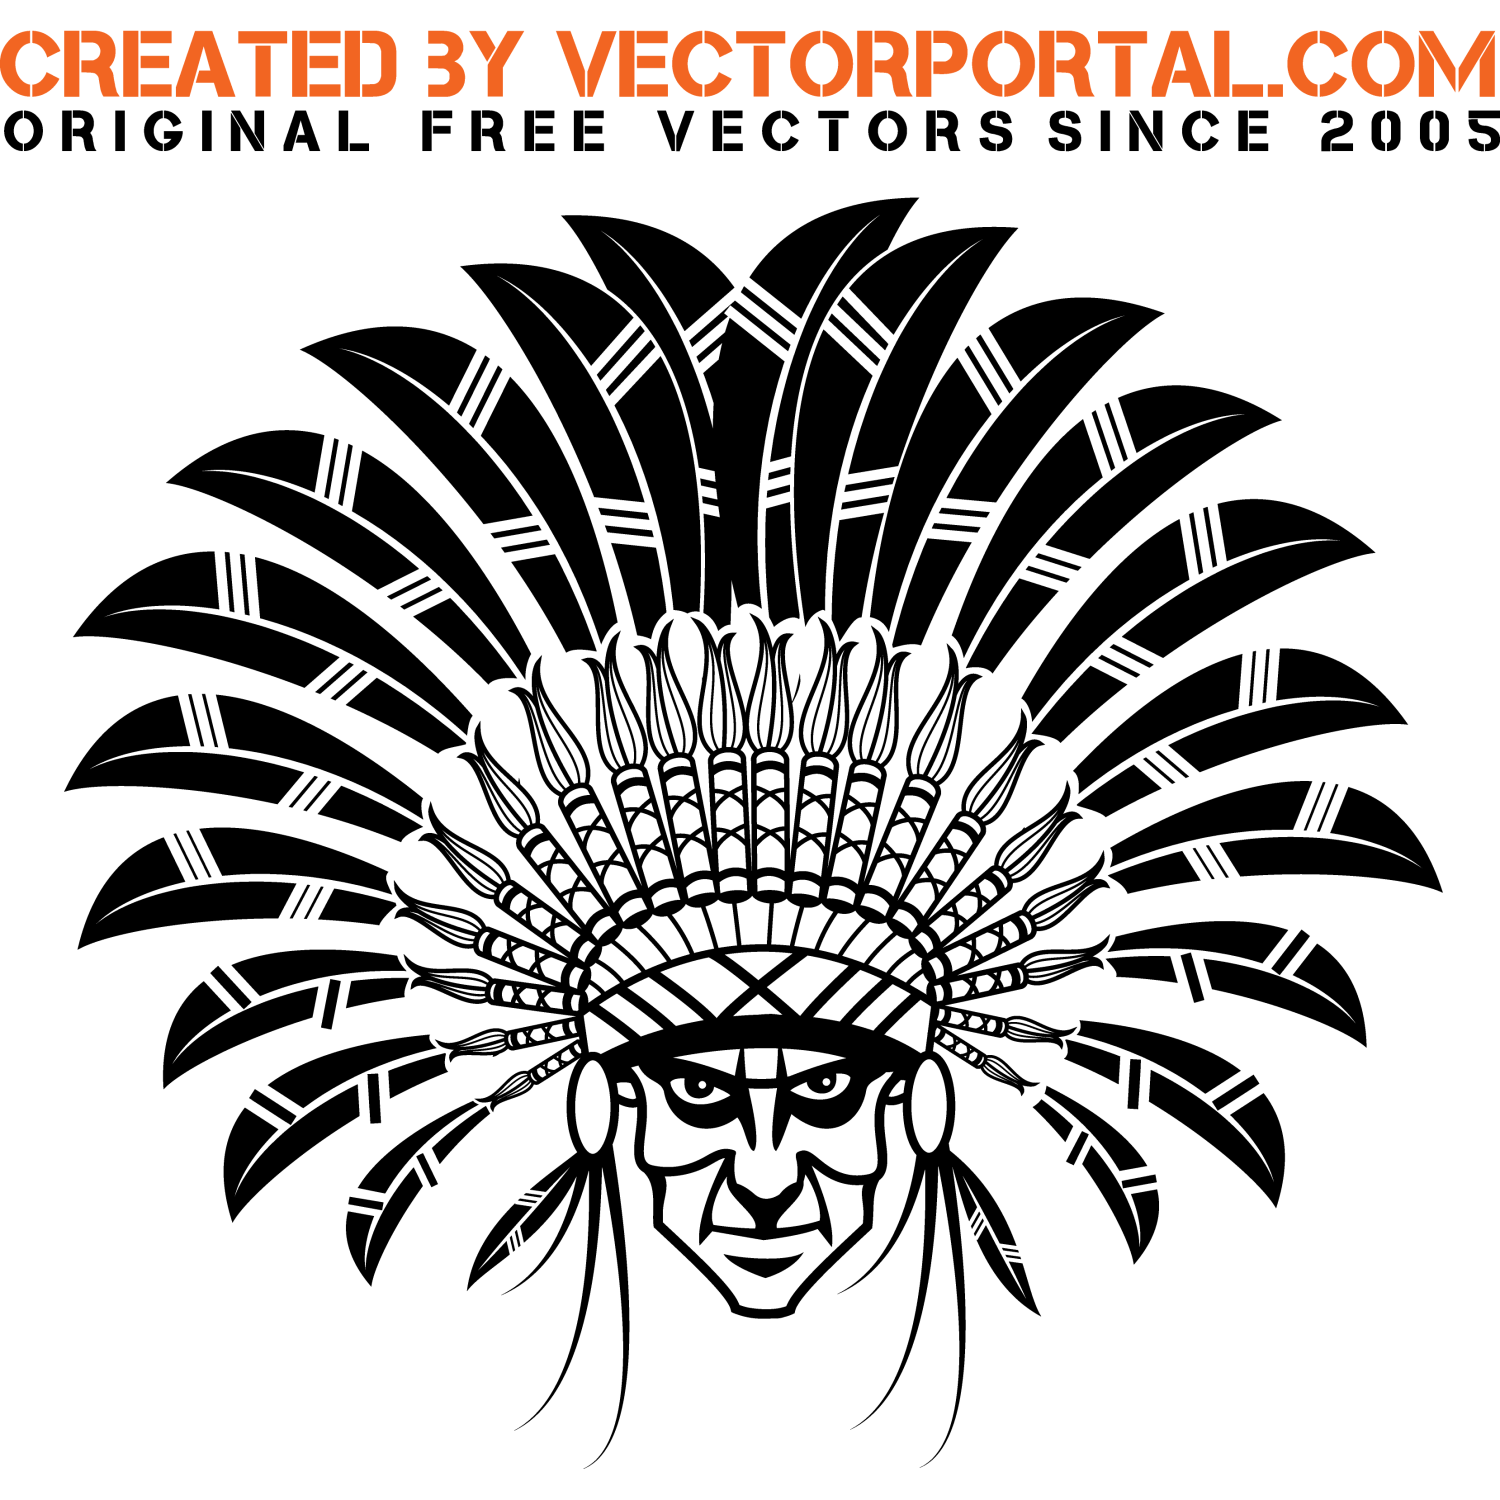 Illustration of American Indian Chief with a big feather headdress